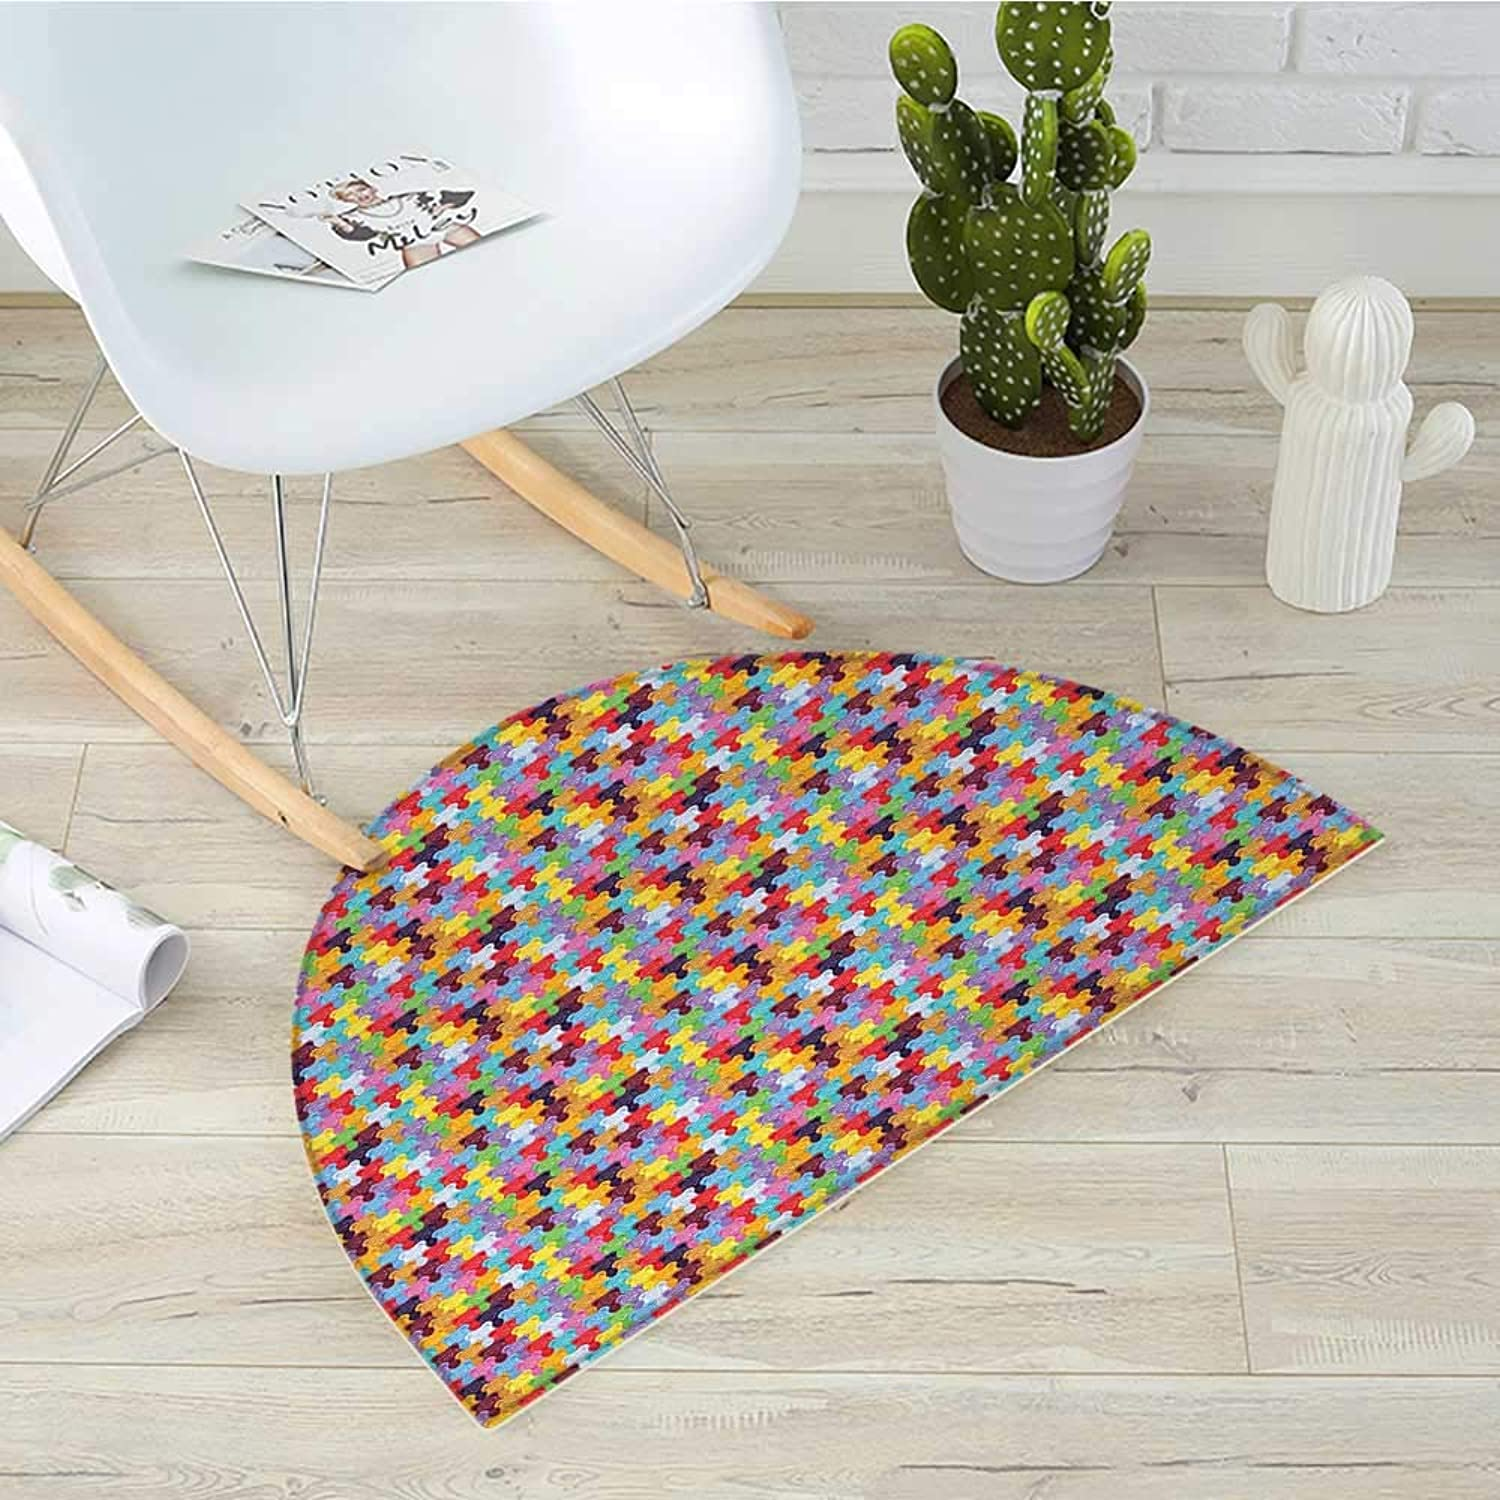 colorful Half Round Door mats Gummy Bears Tile Candies in Different Vibrant colors Sweet Kids Jelly Tasty Snack Bathroom Mat H 39.3  xD 59  Multicolor